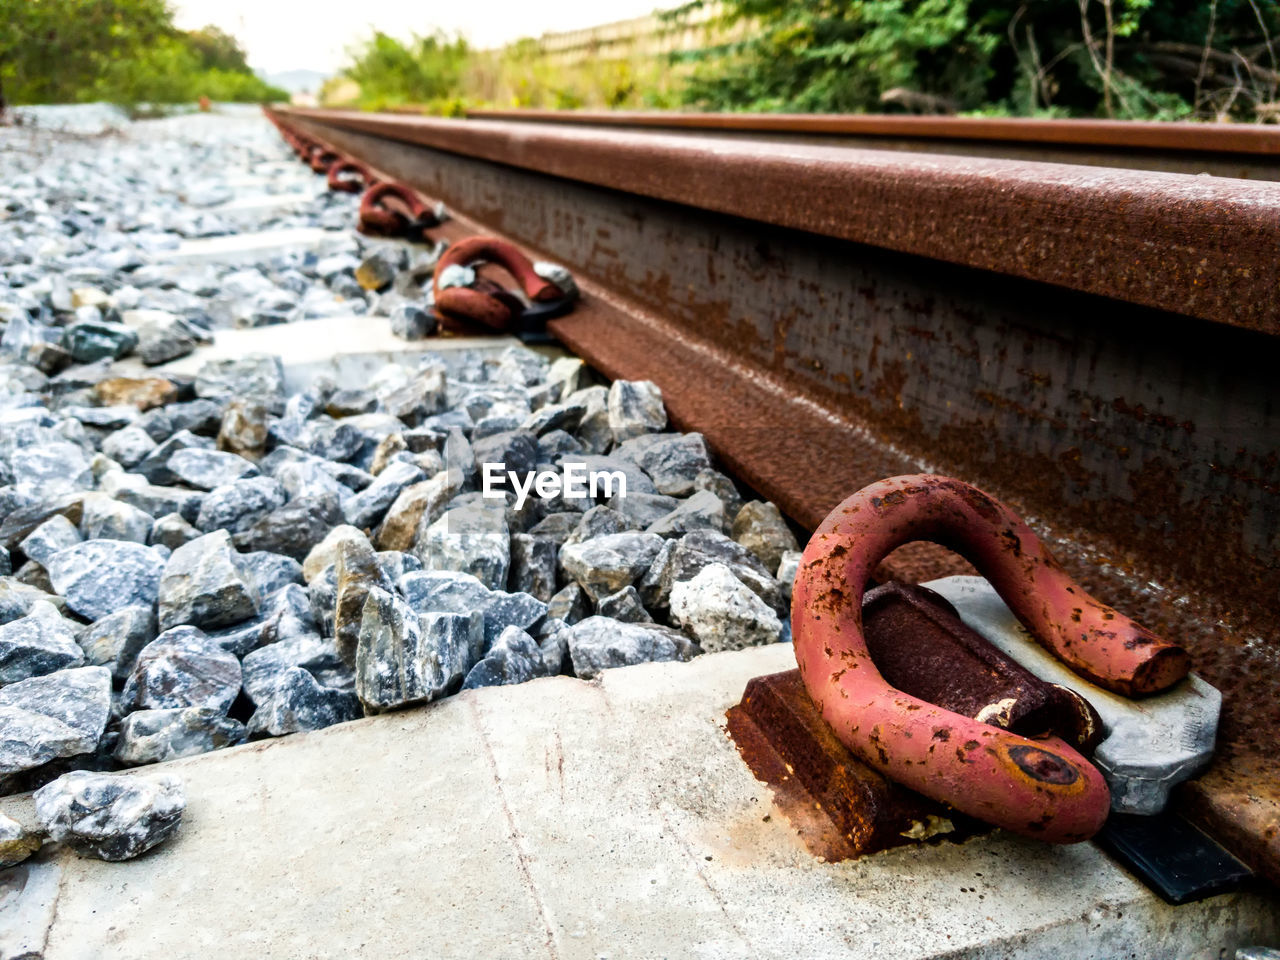 CLOSE-UP OF RUSTY METAL CHAIN ON RAILROAD TRACK